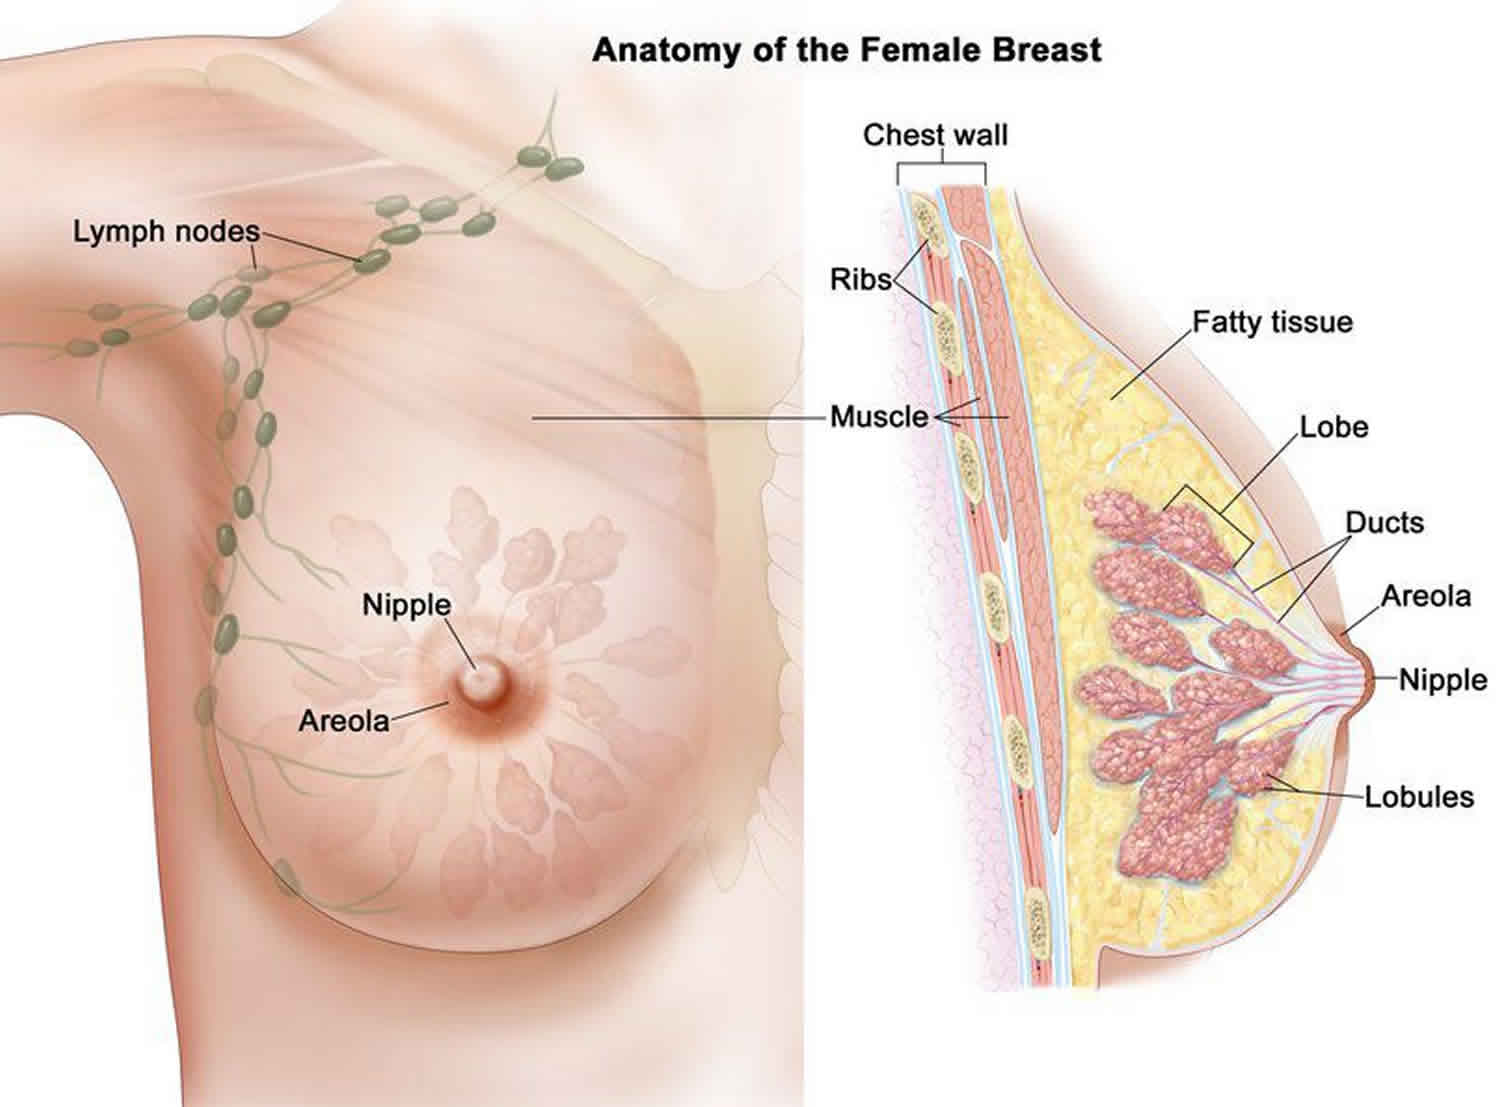 what causes papilloma in the breast